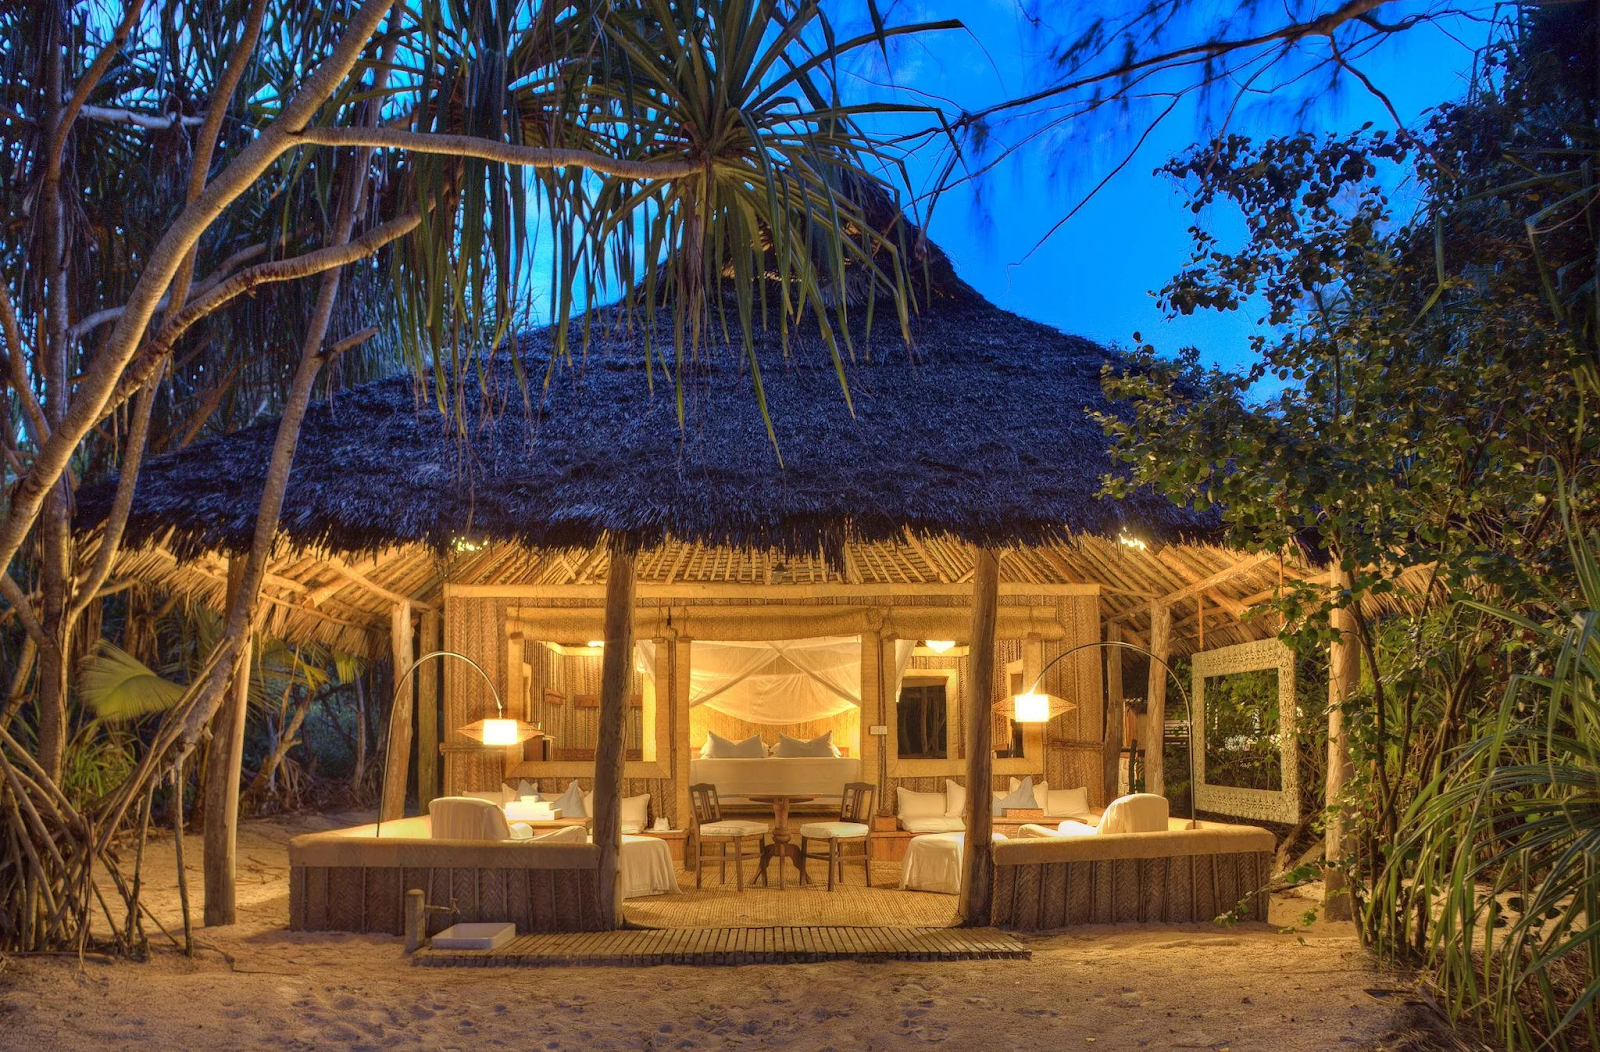 Tropical honeymoon romance in Pemba, Zanzibar